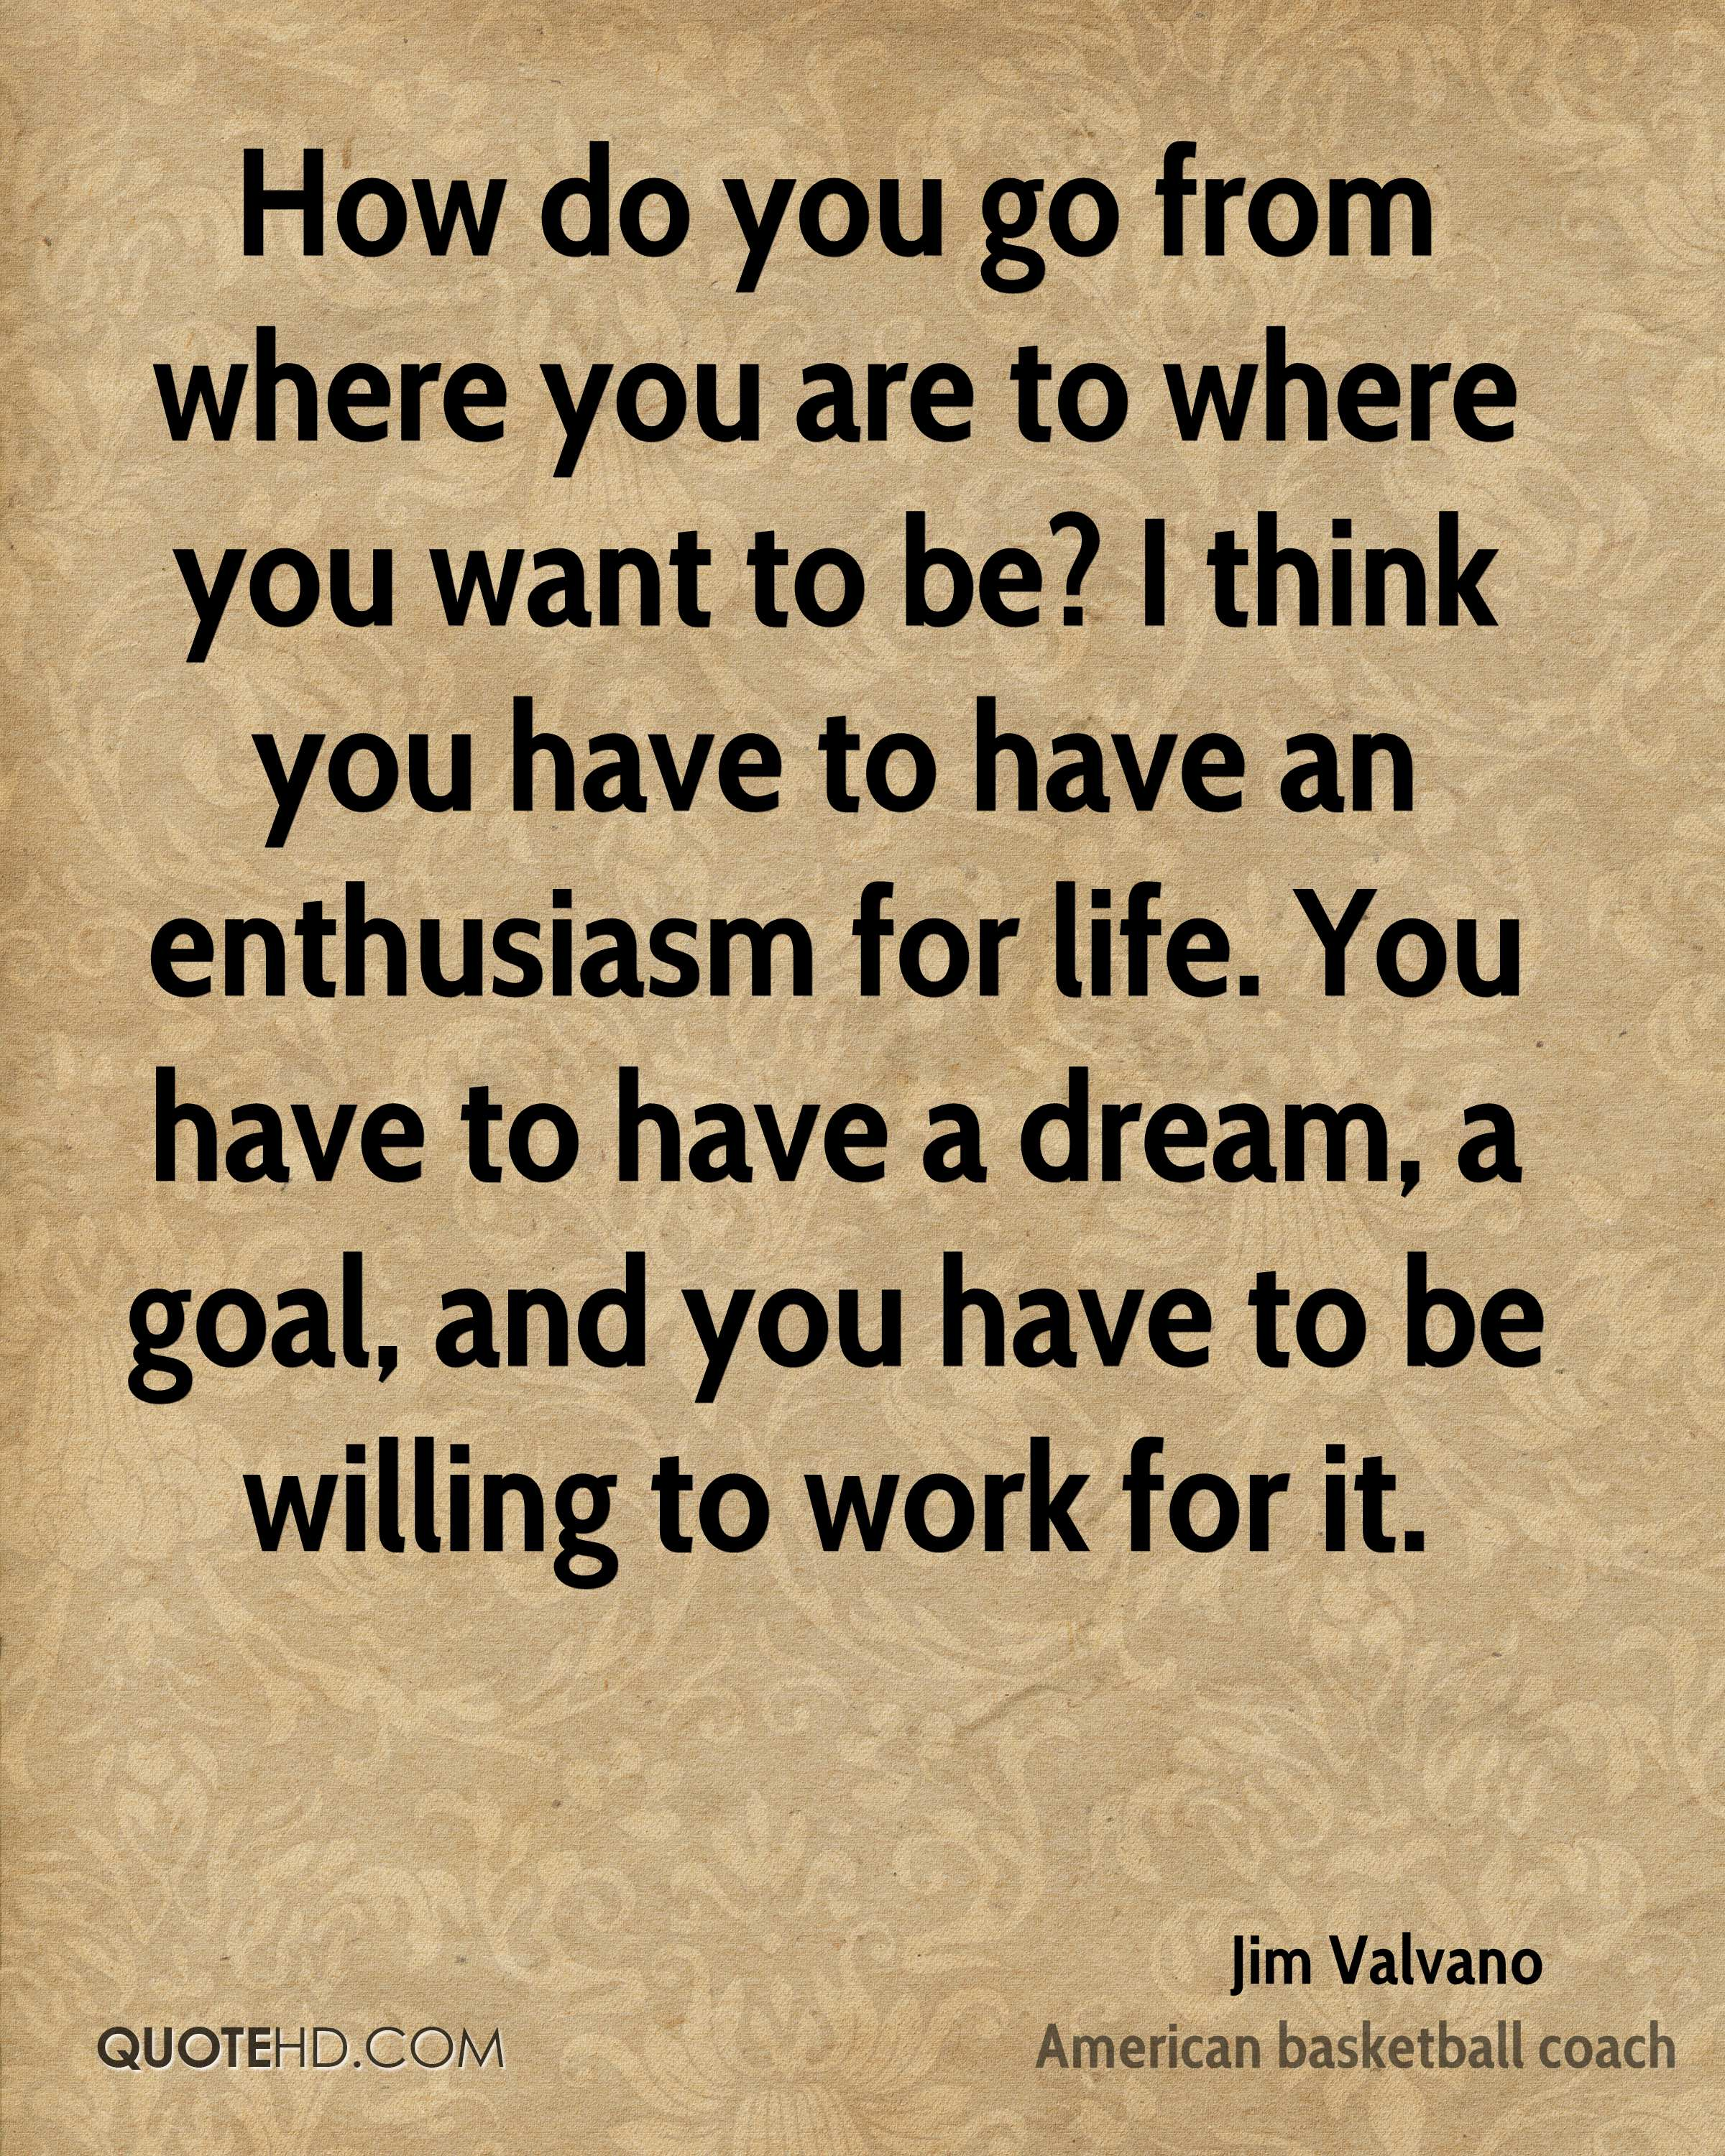 How do you go from where you are to where you want to be? I think you have to have an enthusiasm for life. You have to have a dream, a goal, and you have to be willing to work for it.